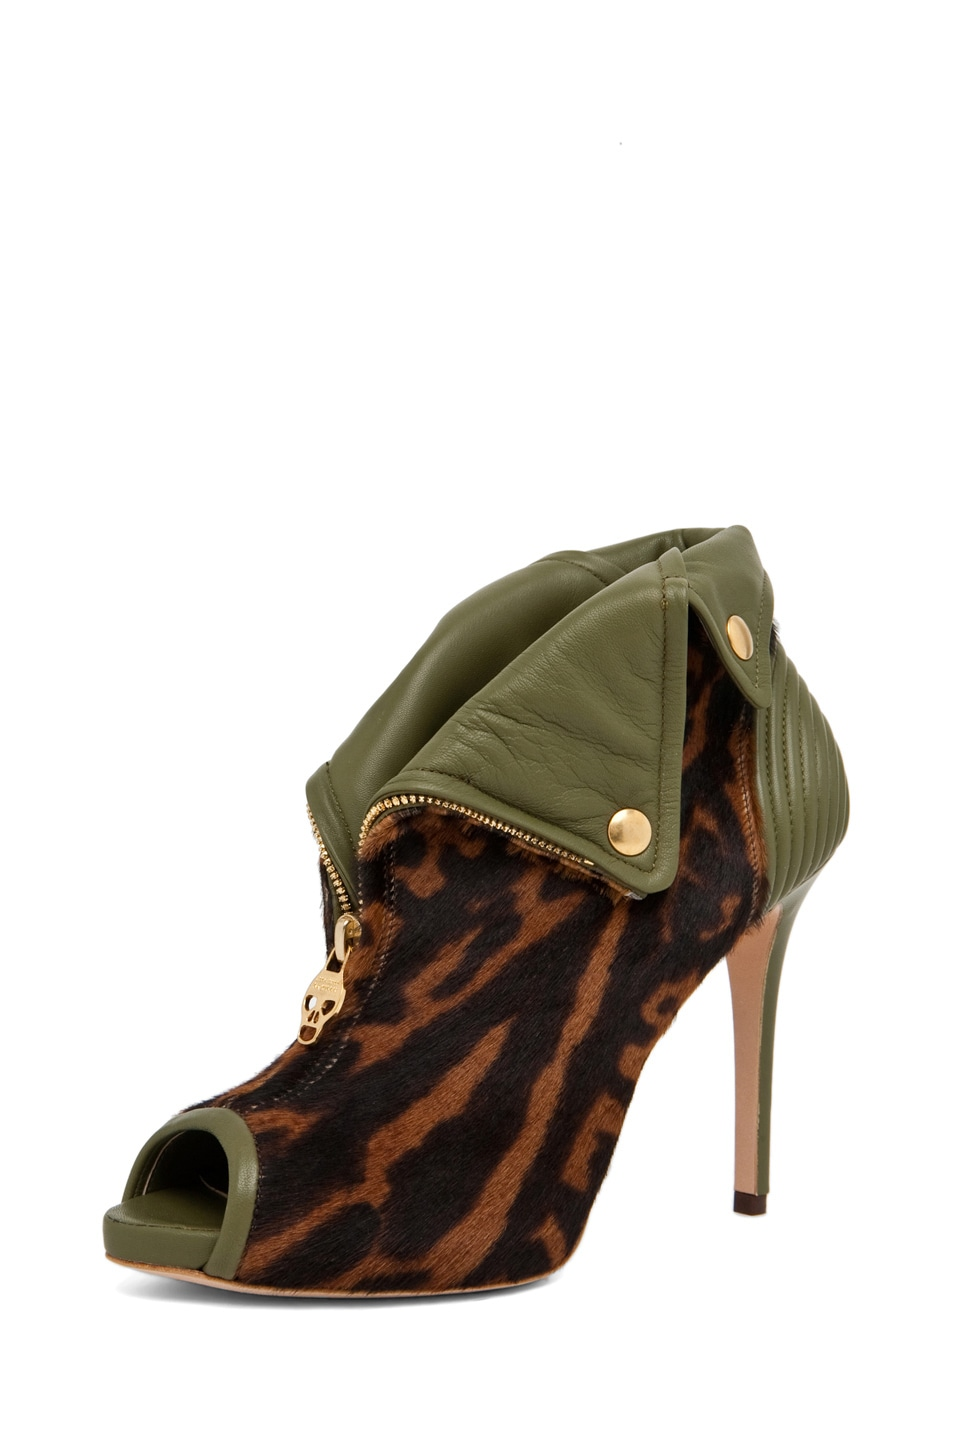 Image 2 of Alexander McQueen Zipper Bootie in Ocelot/Olive Green